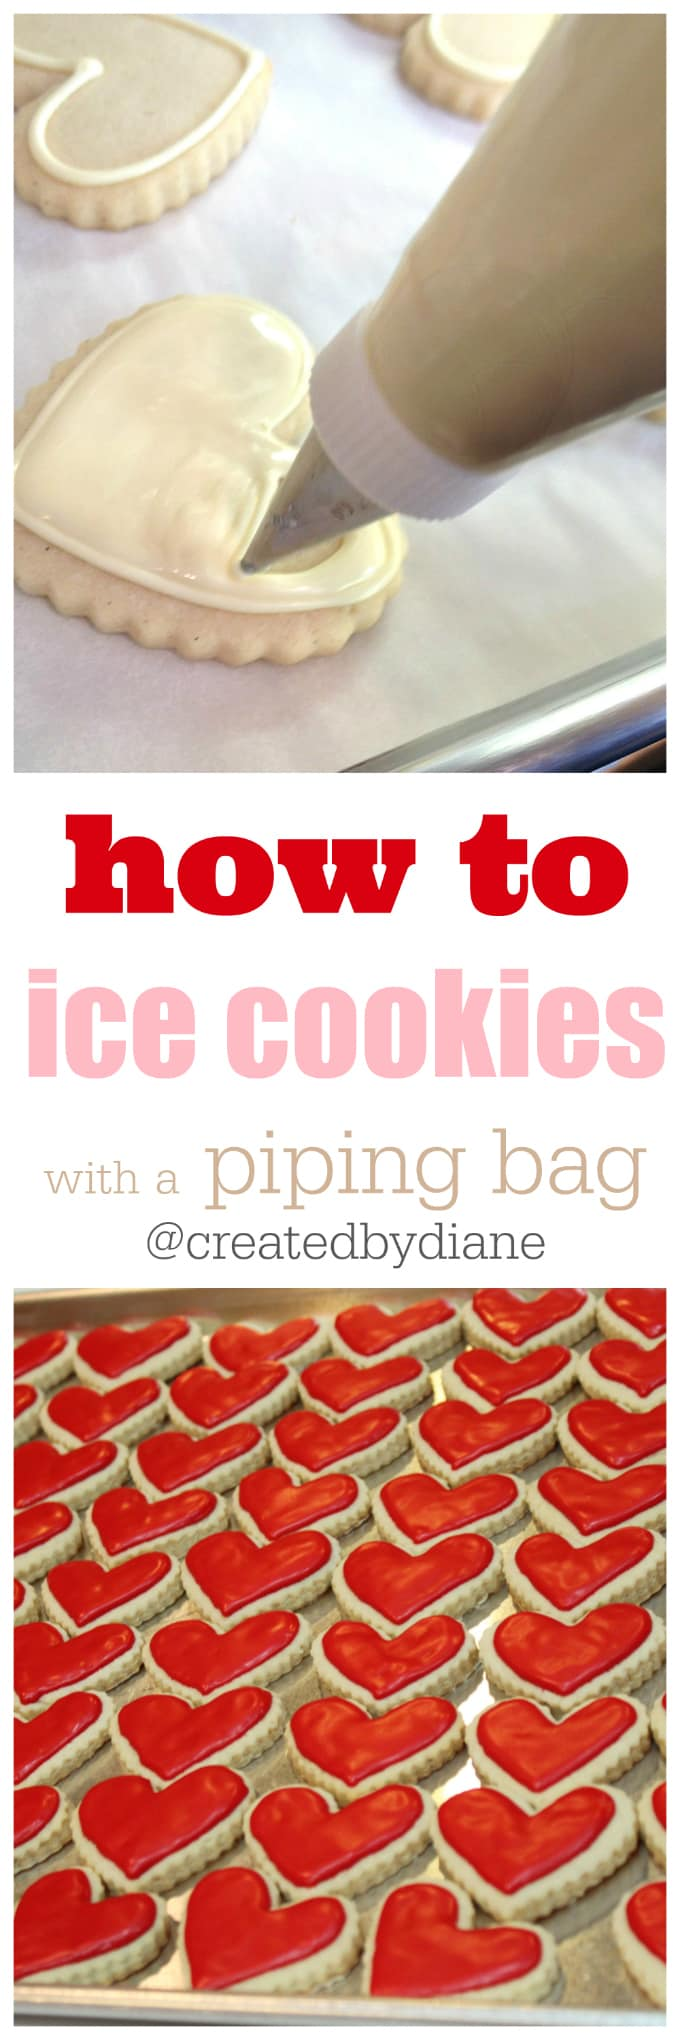 Ice Cookies With A Piping Bag